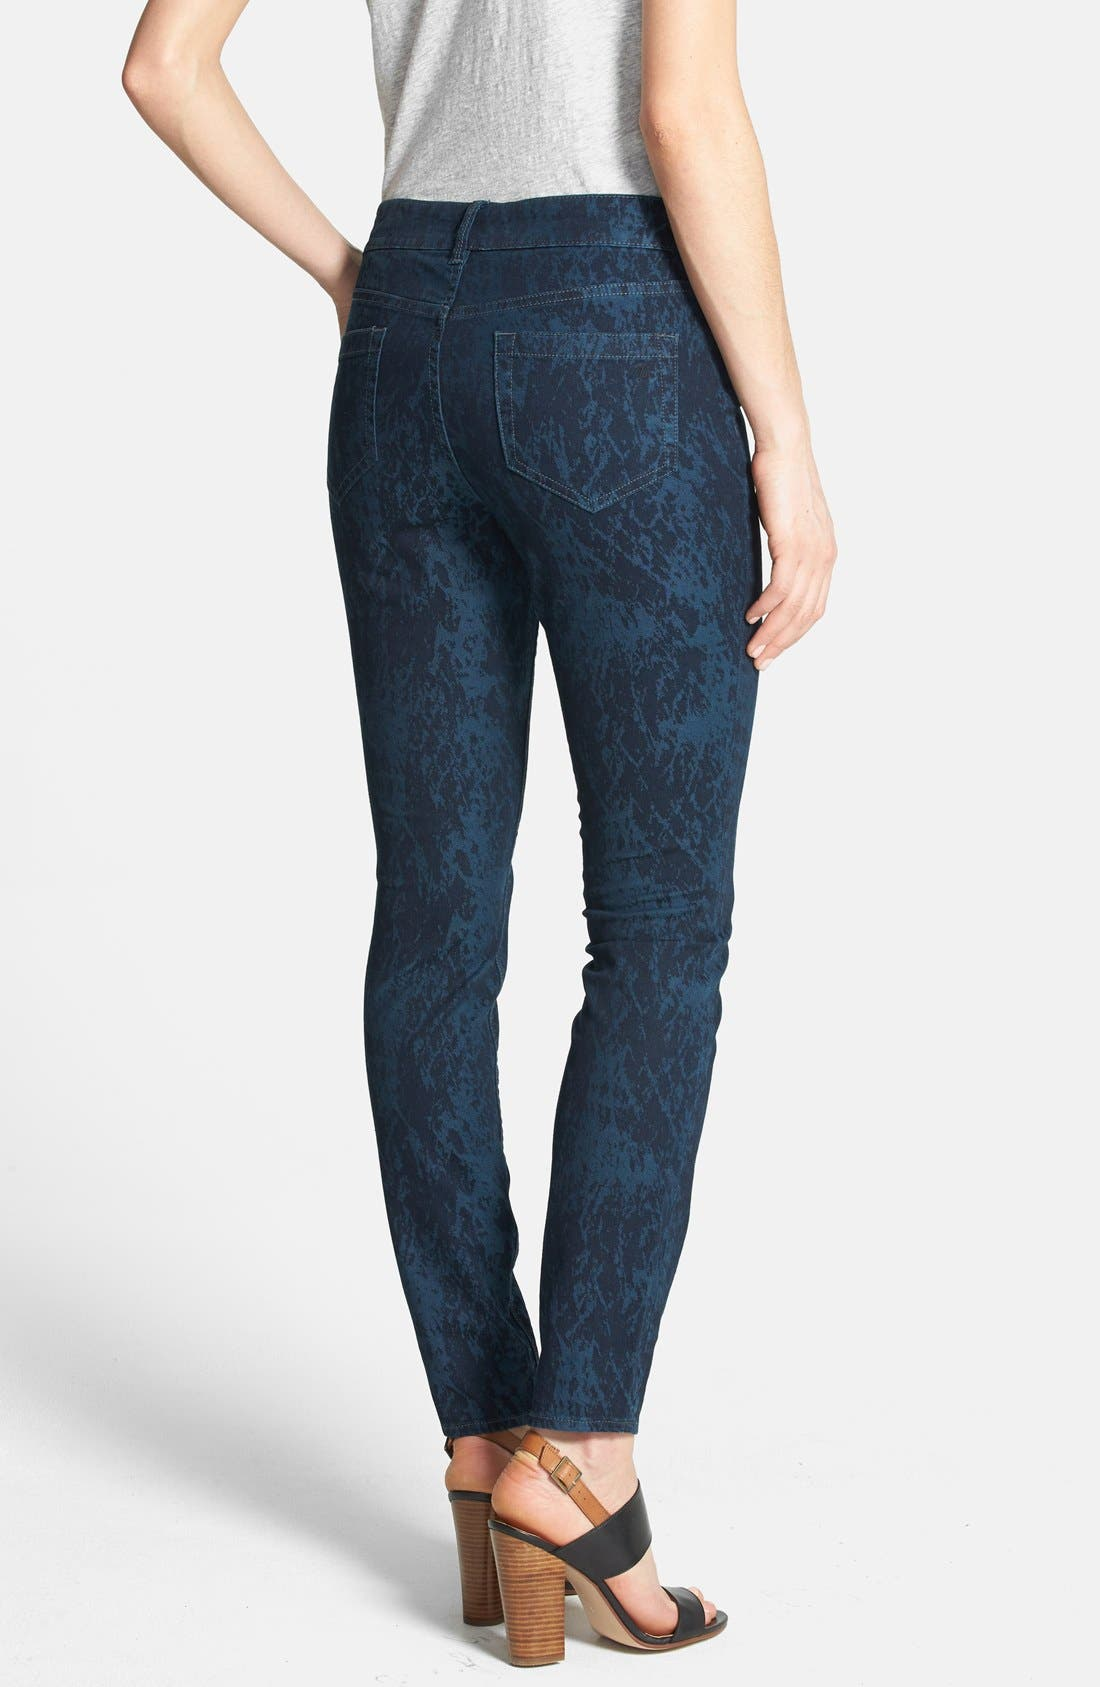 Alternate Image 2  - Two by Vince Camuto 'Paint Splattered' Print Skinny Jeans (Blue Night)